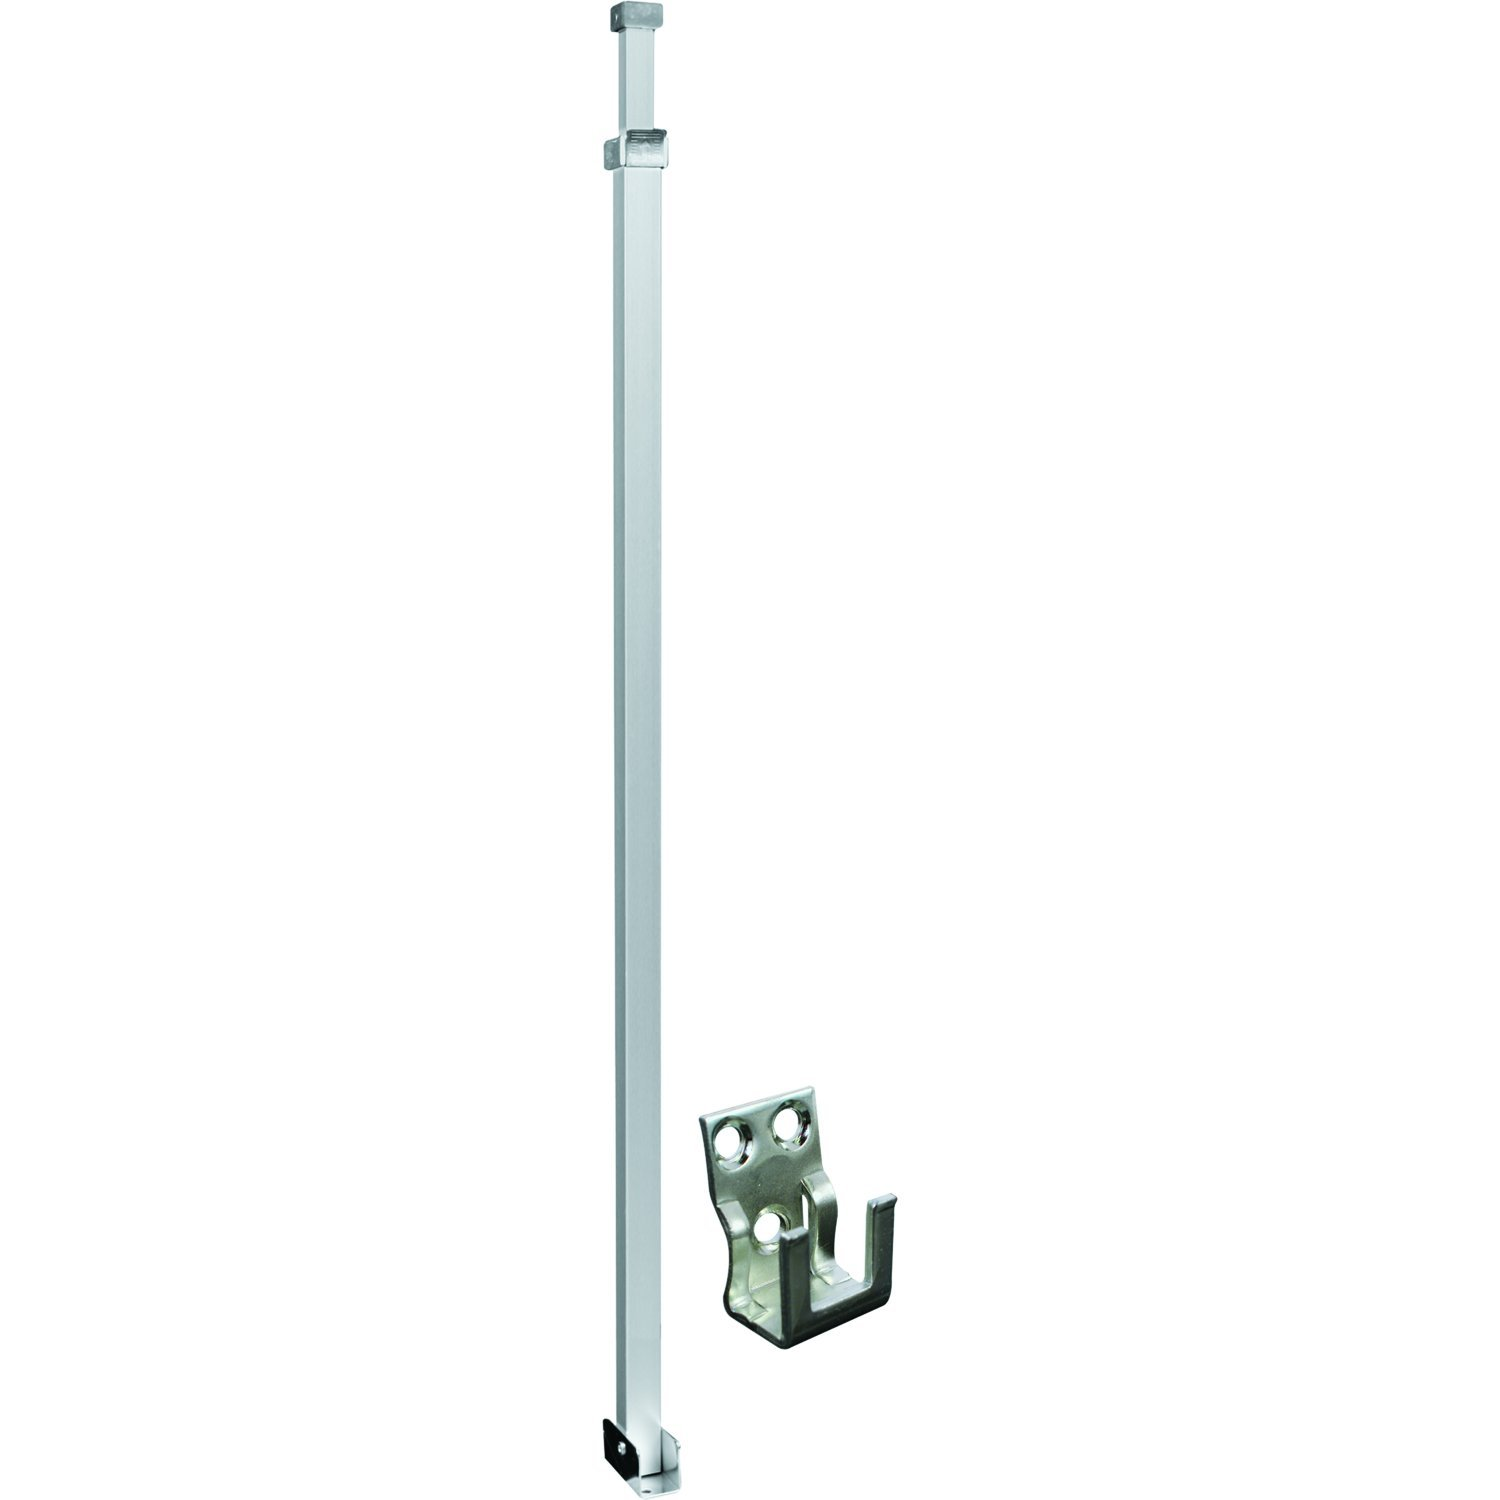 Defender Security U 9920 Security Bar For Sliding Patio Doors, Adjustable, Aluminum Construction With Aluminum Finish, Pack of 1